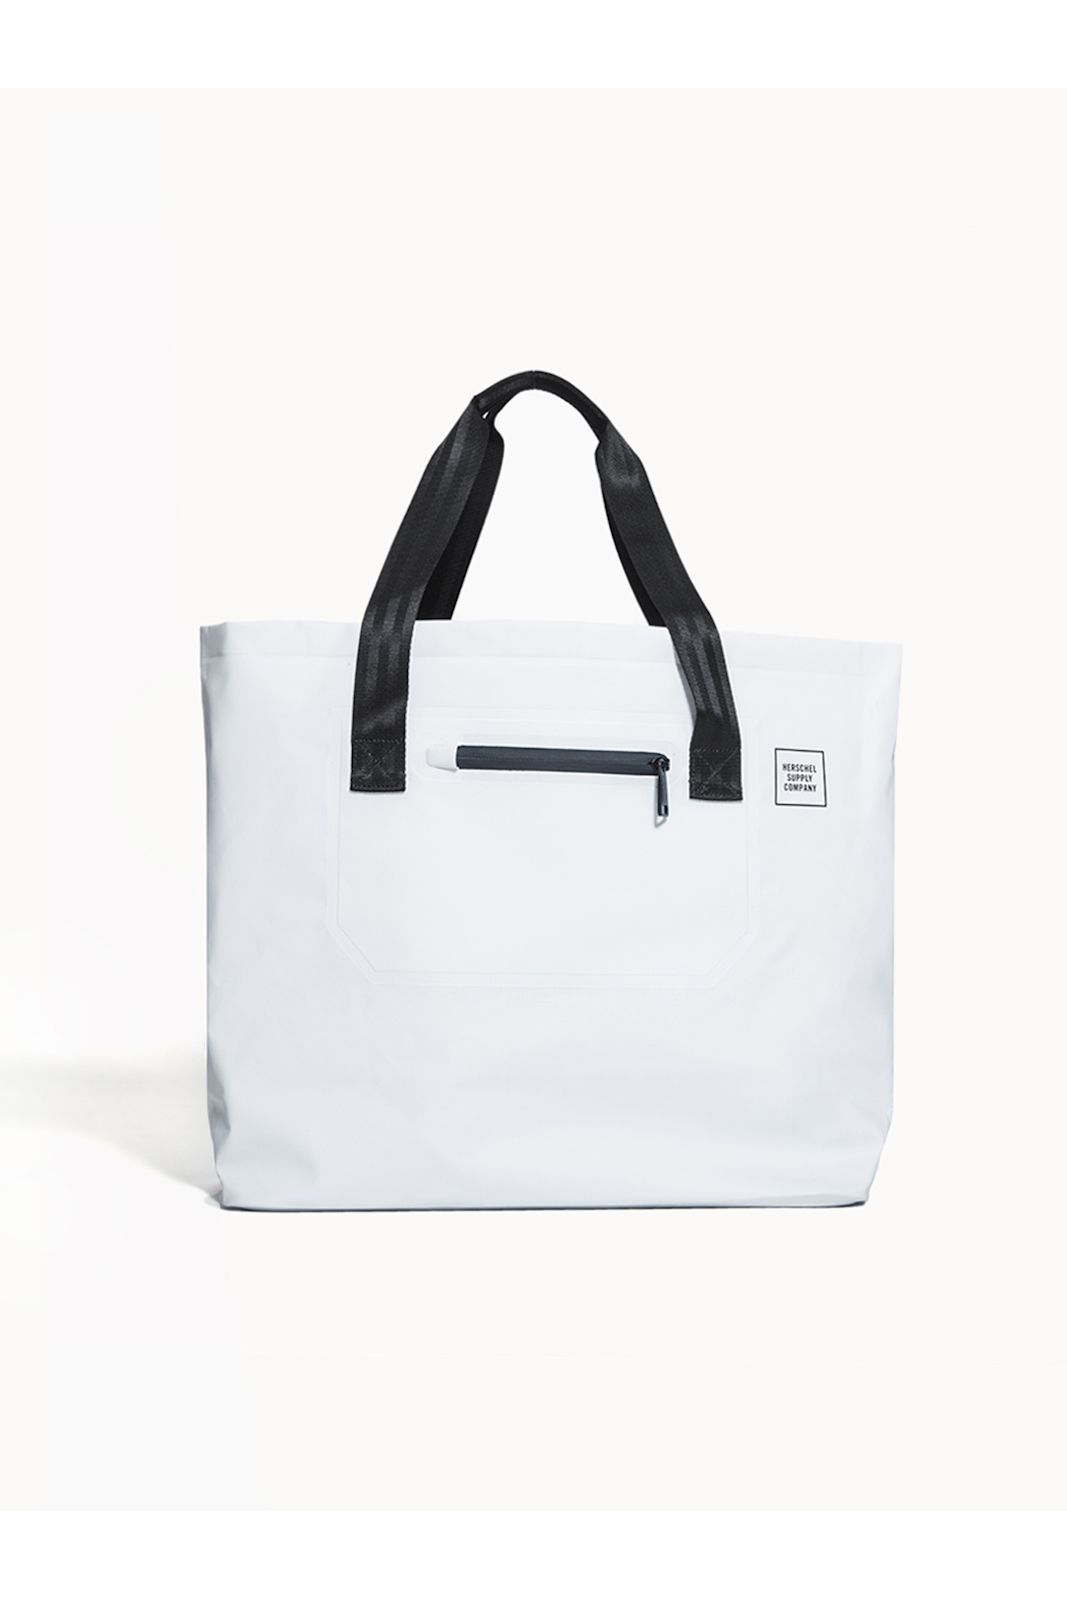 9c229e7e4101 These Gym Bags Are As Stylish As You Are